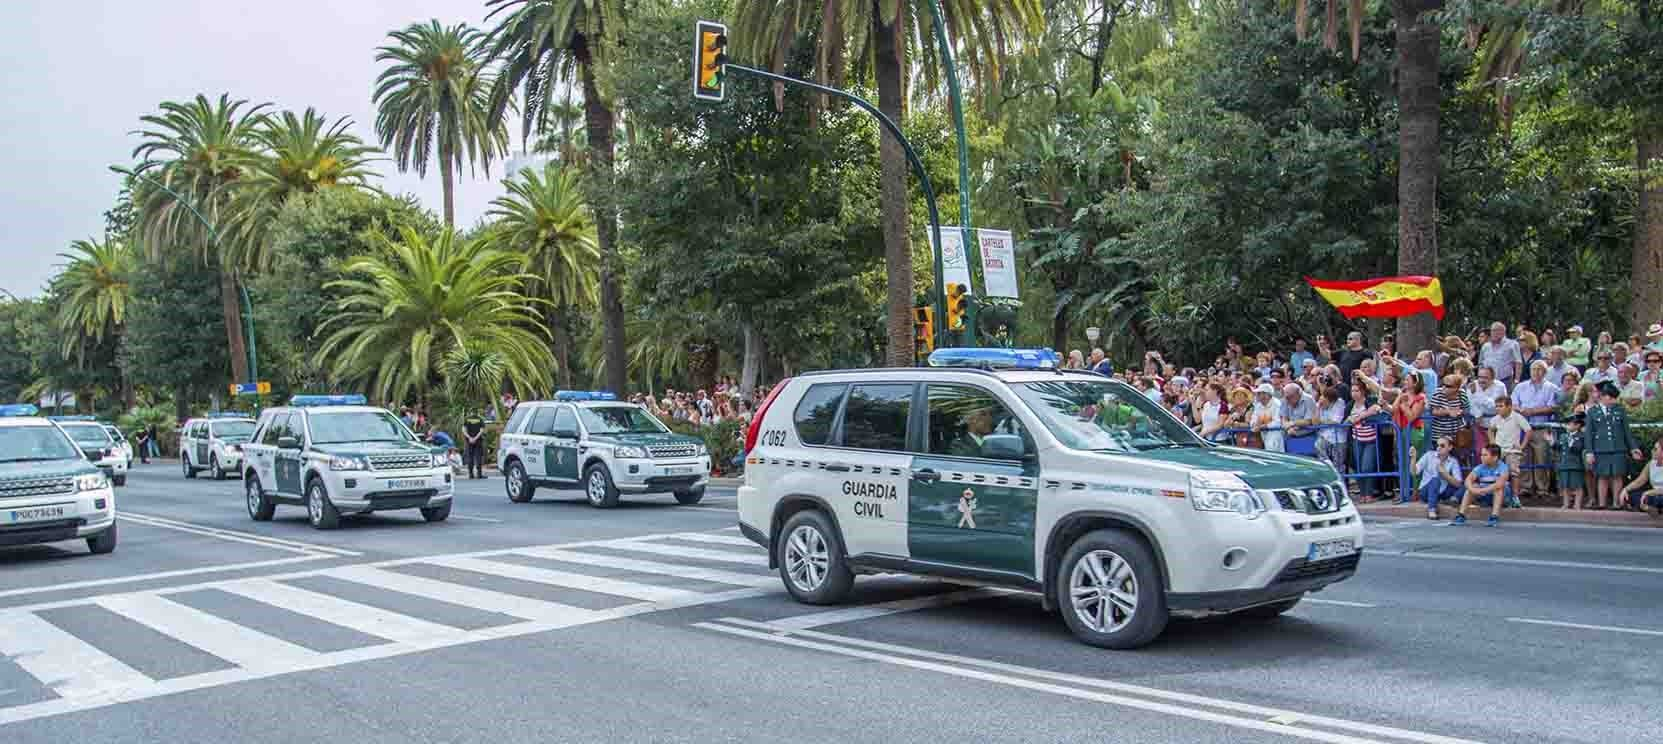 carros de la guardia civil en un desfile